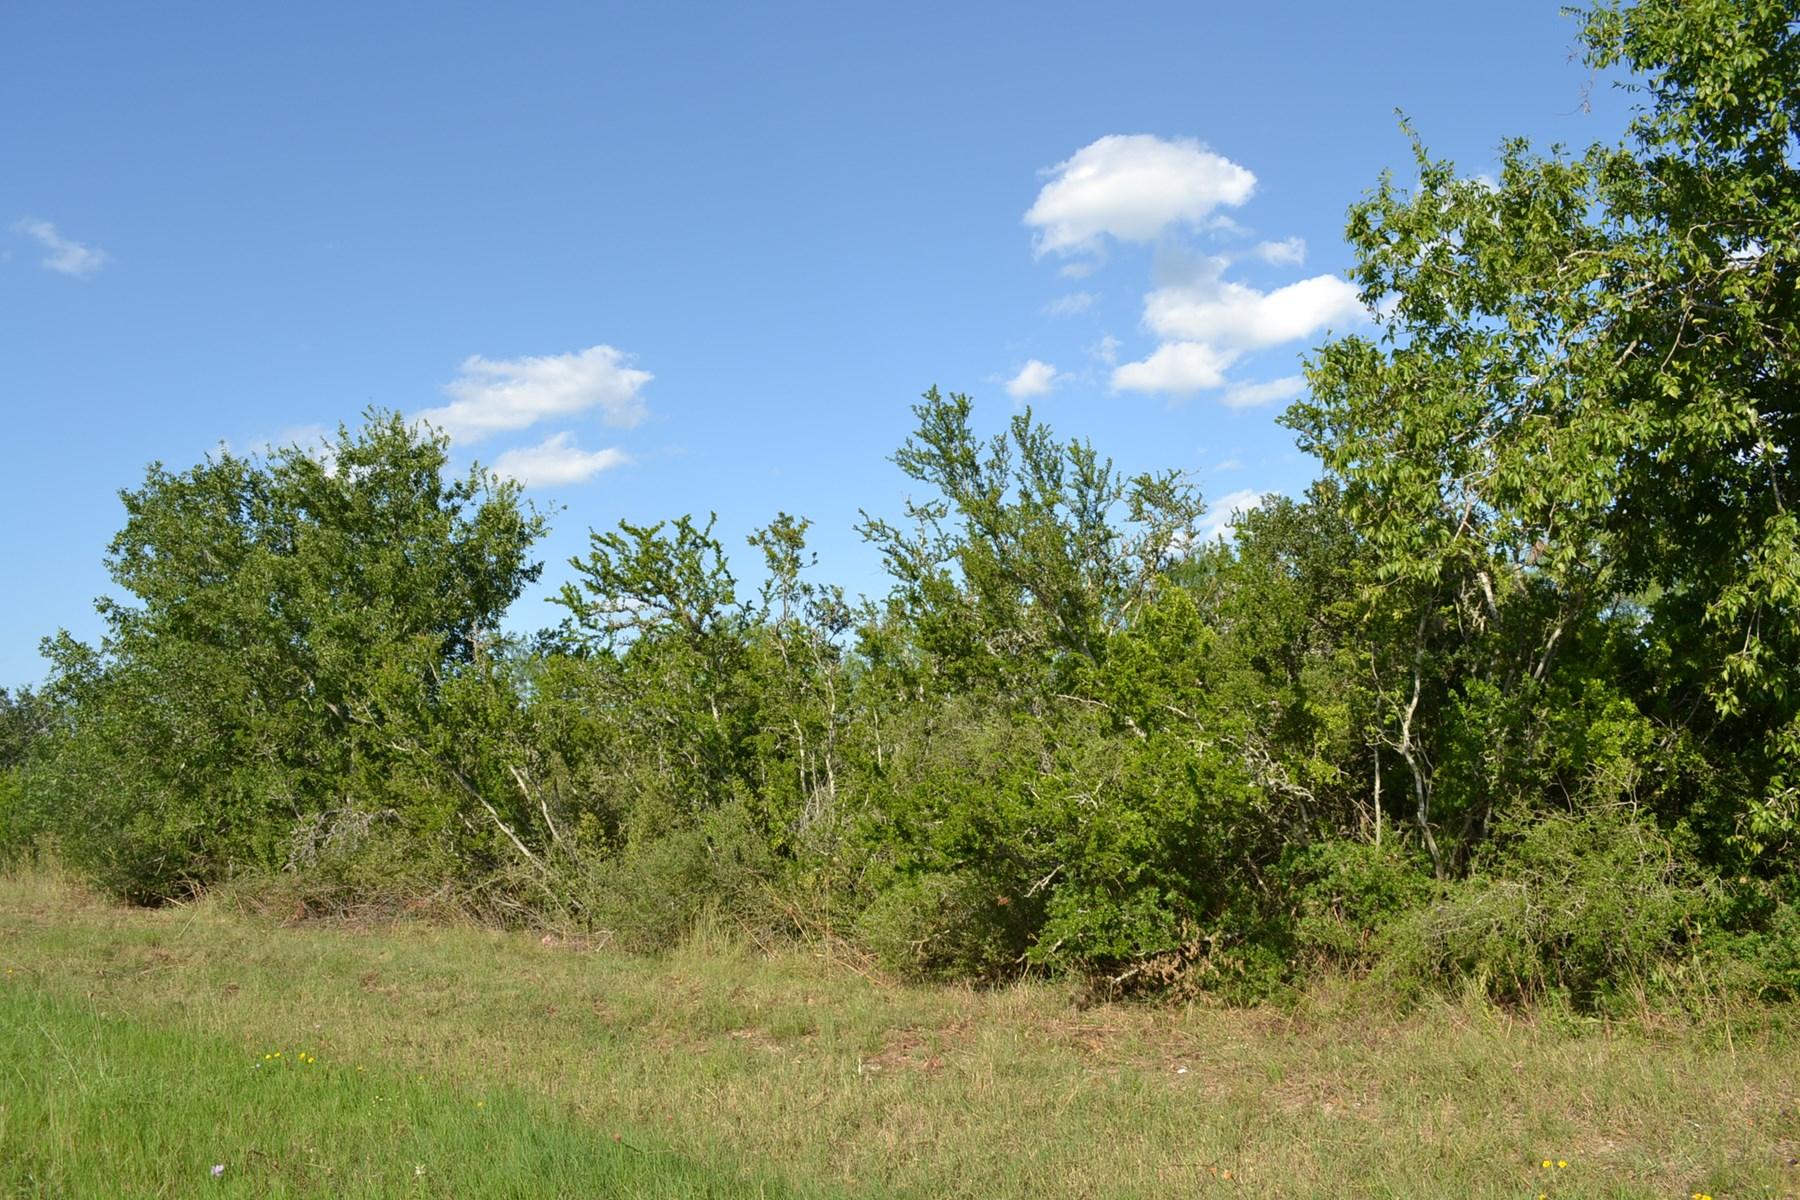 17.8 ACRES OF UNRESTRICTED PROPERTY - SOUTH OF SAN ANTONIO